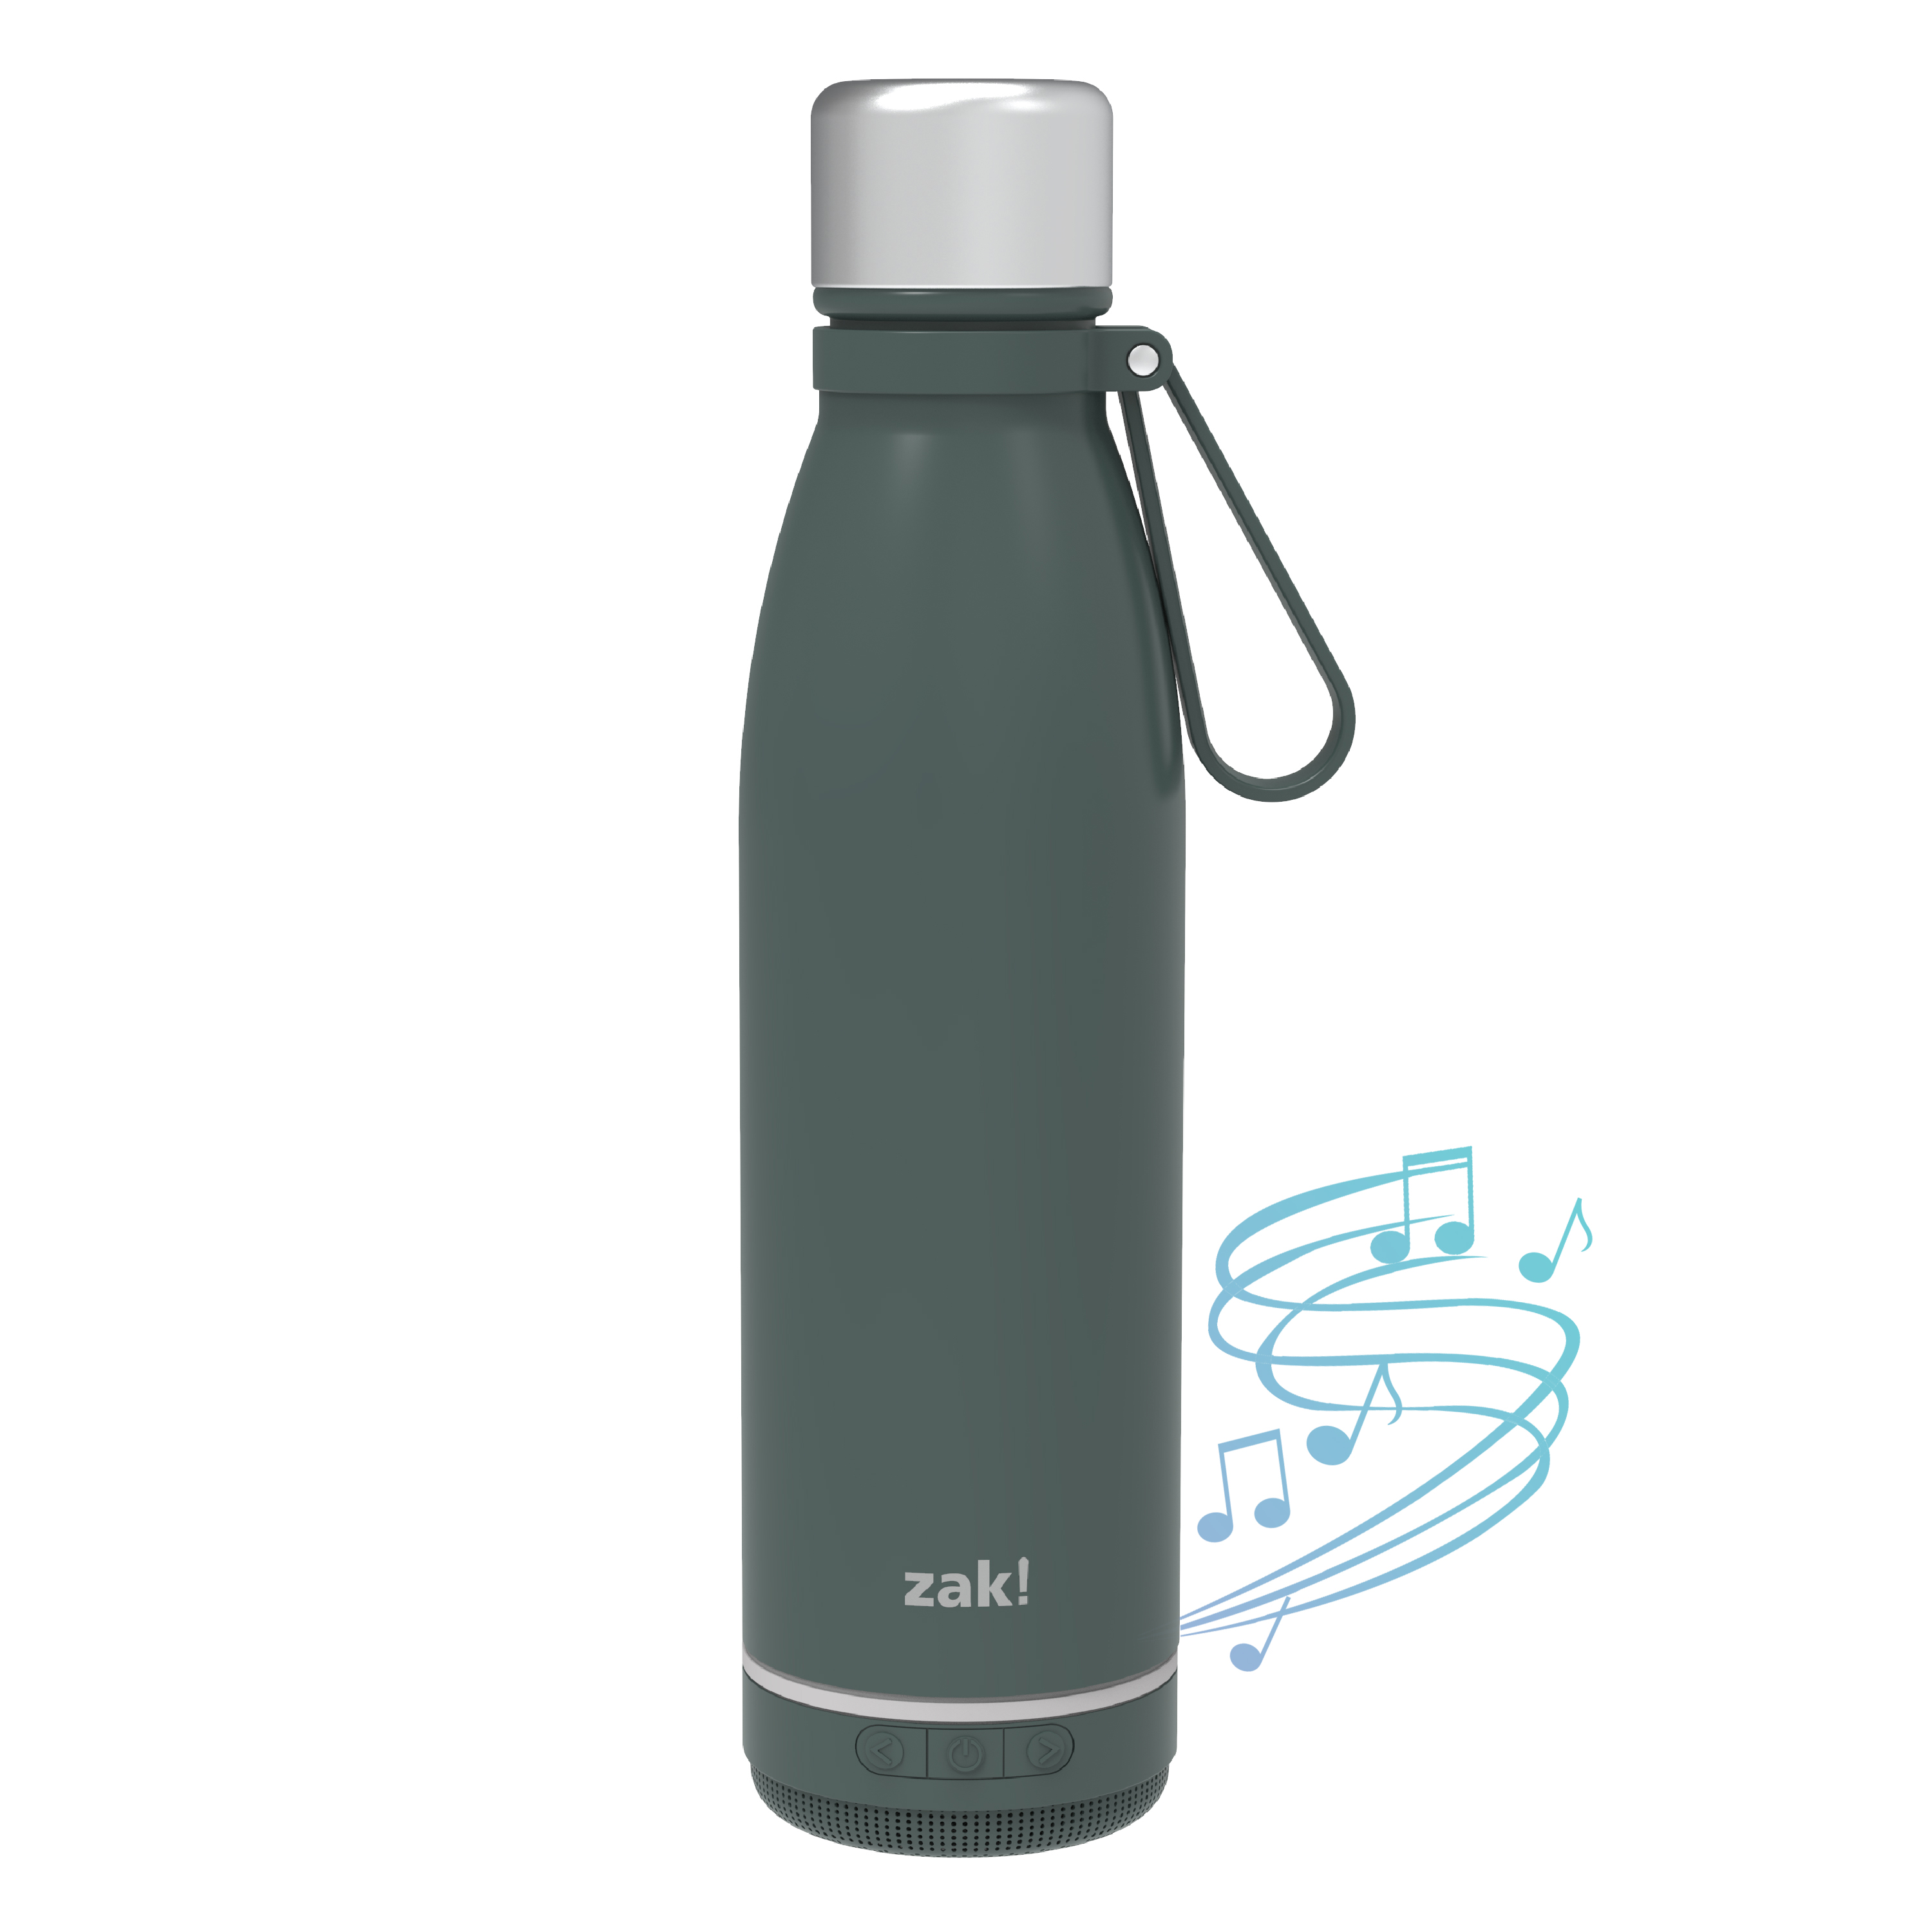 Zak Play 17.5 ounce Stainless Steel Tumbler with Bluetooth Speaker, Gray slideshow image 2